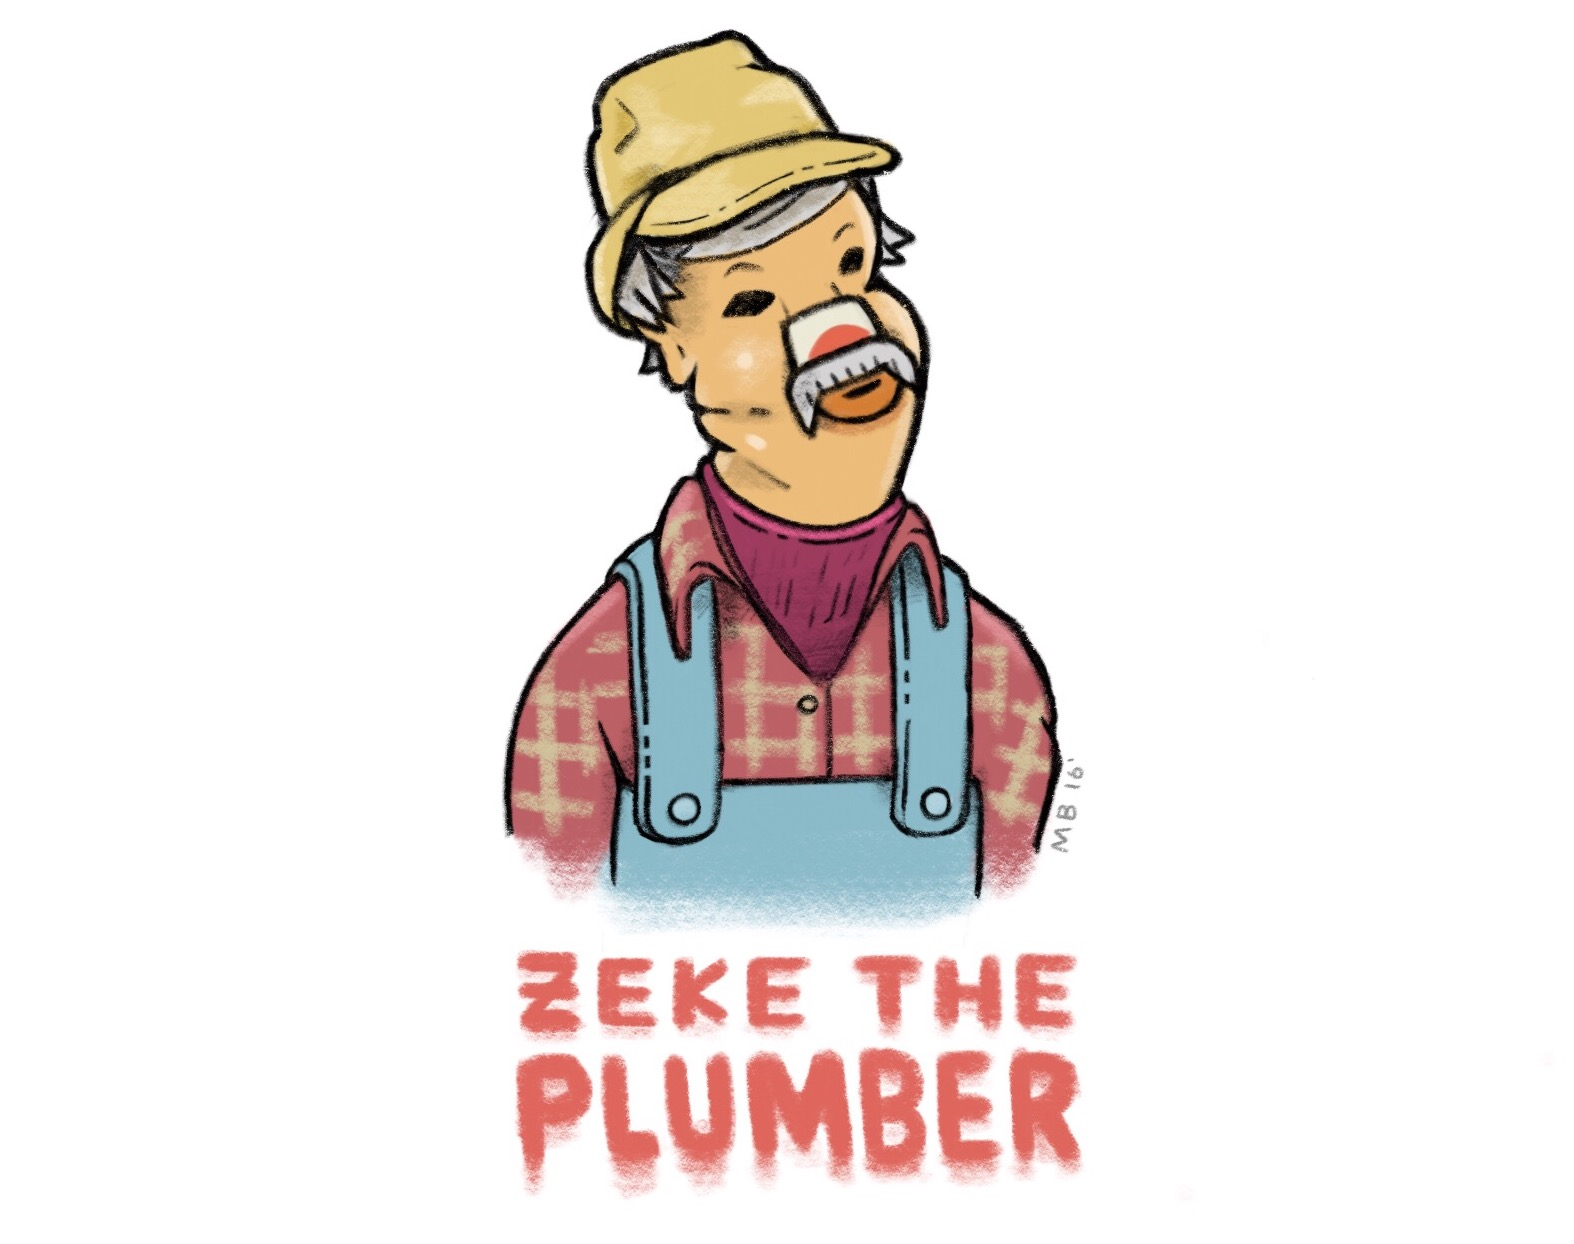 salute_your_shorts_zeke_the_plumber_max_brown